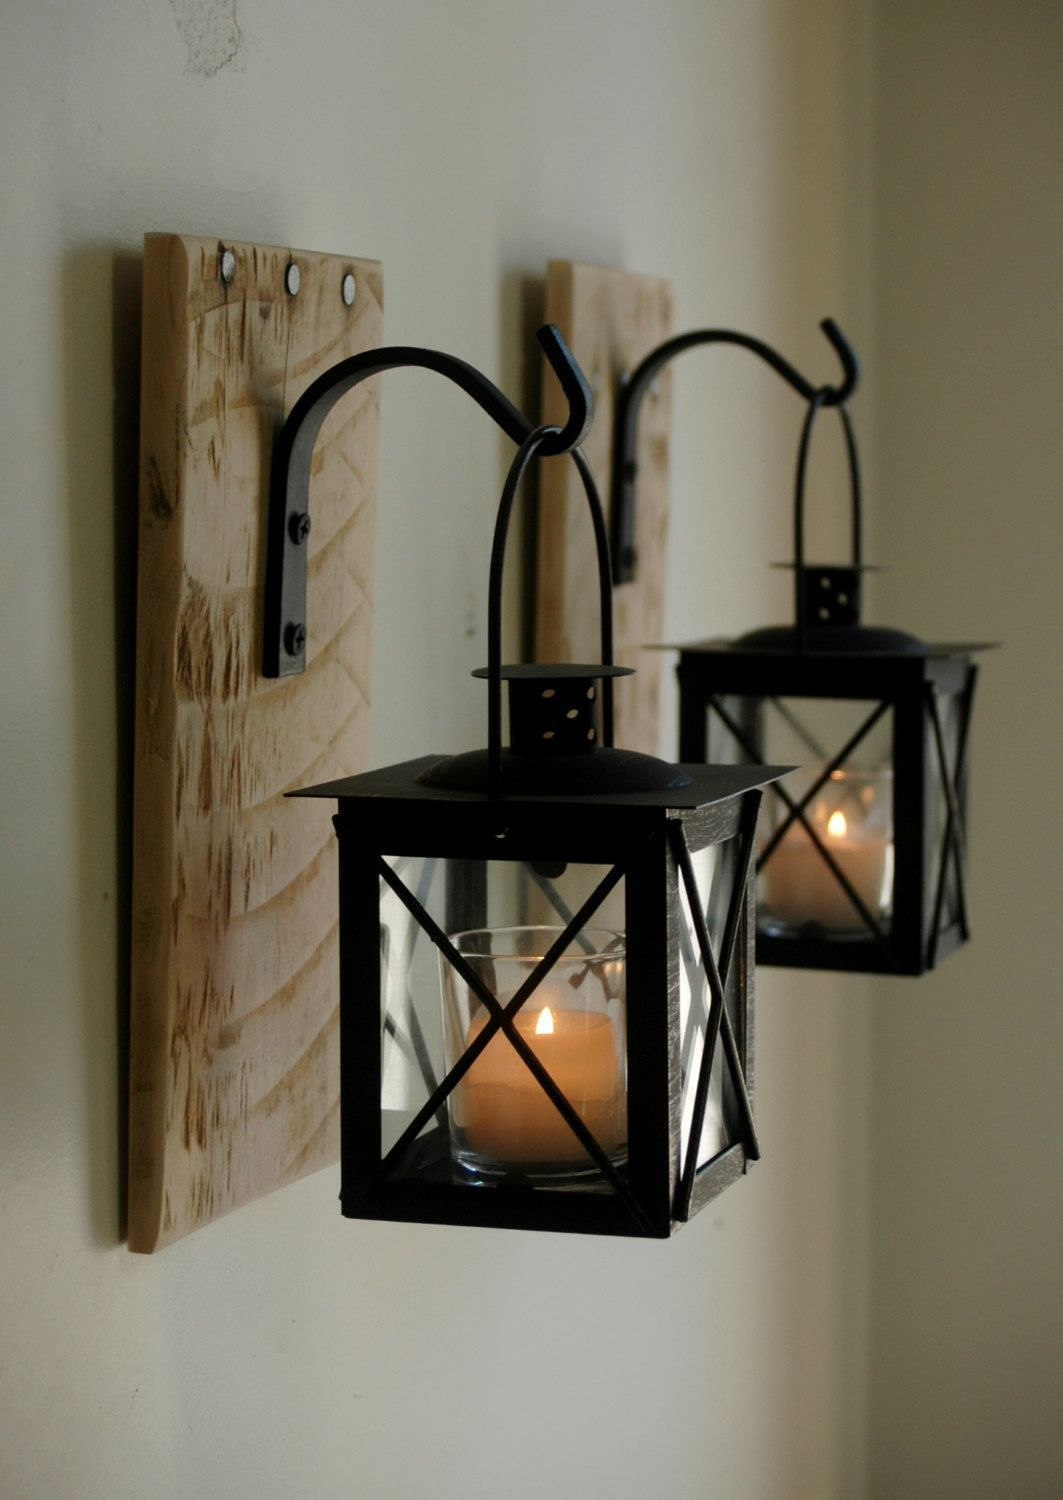 Genial Black Lantern Pair With Wrought Iron Hooks On Recycled Wood Board For  Unique Wall Decor, Home Decor, Bedroom Decor We Could Hang Lanterns Like  This On The ...